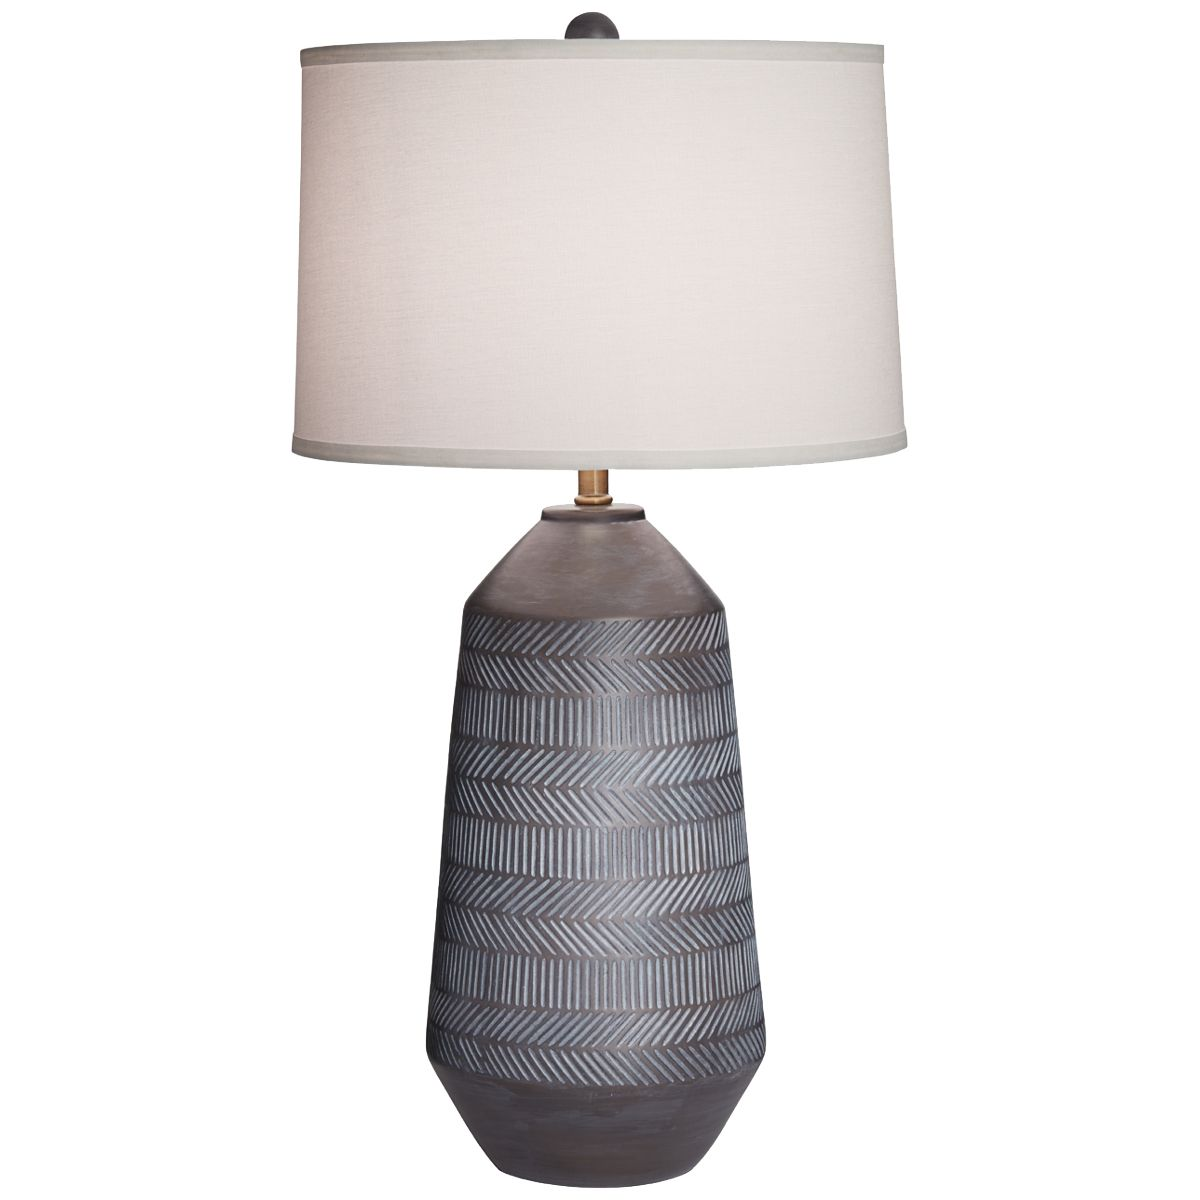 South Mesa Table Lamp